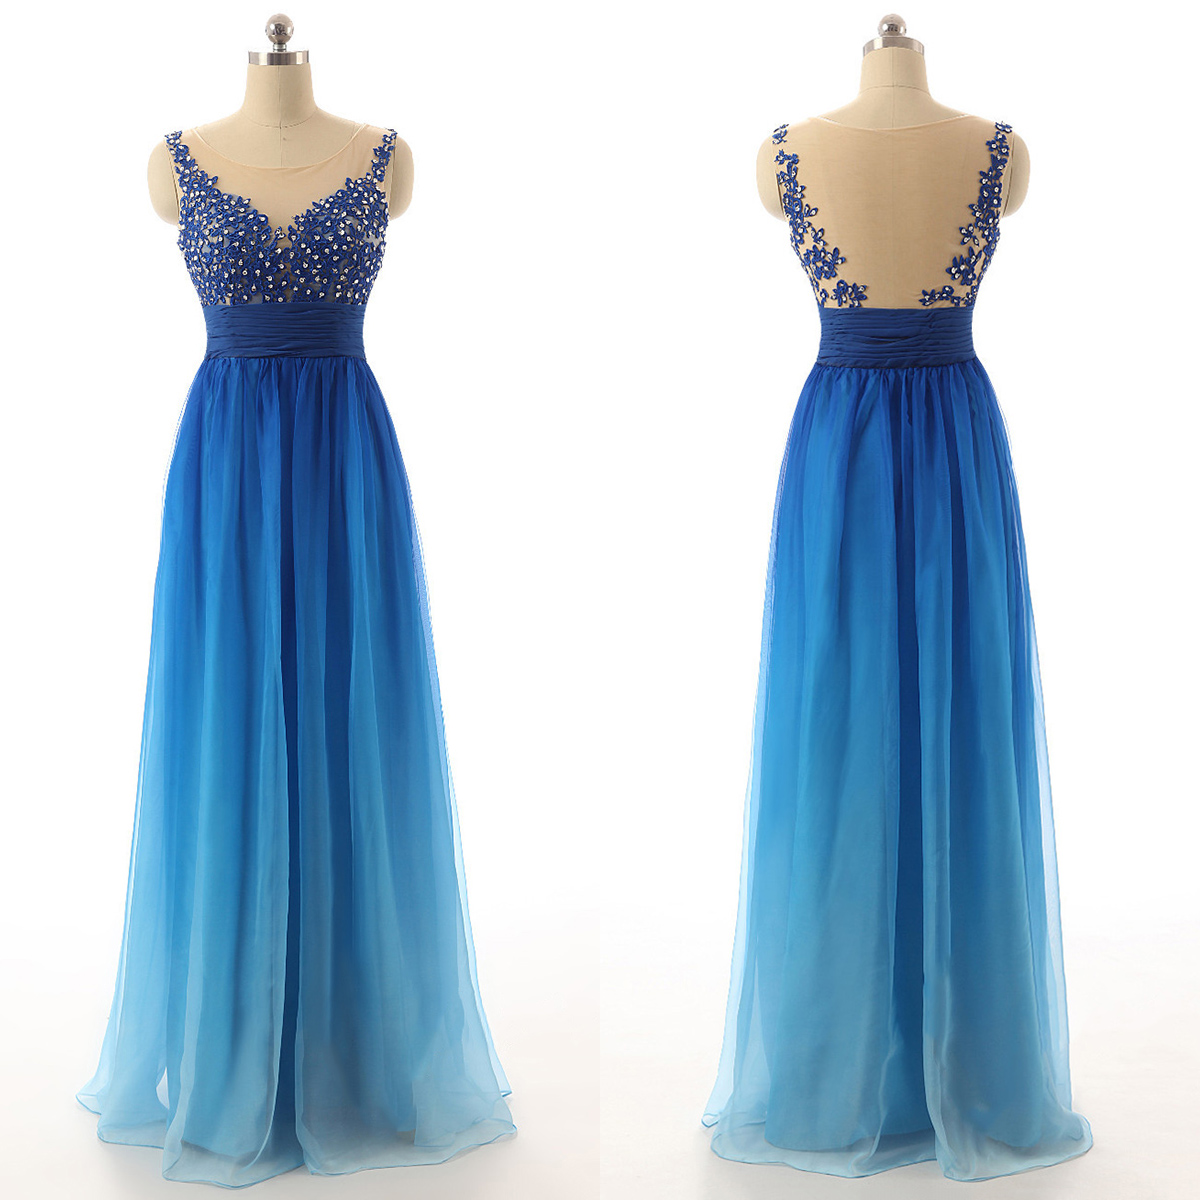 Blue Gradient Long Chiffon A-Line Prom Dress Featuring Lace ...